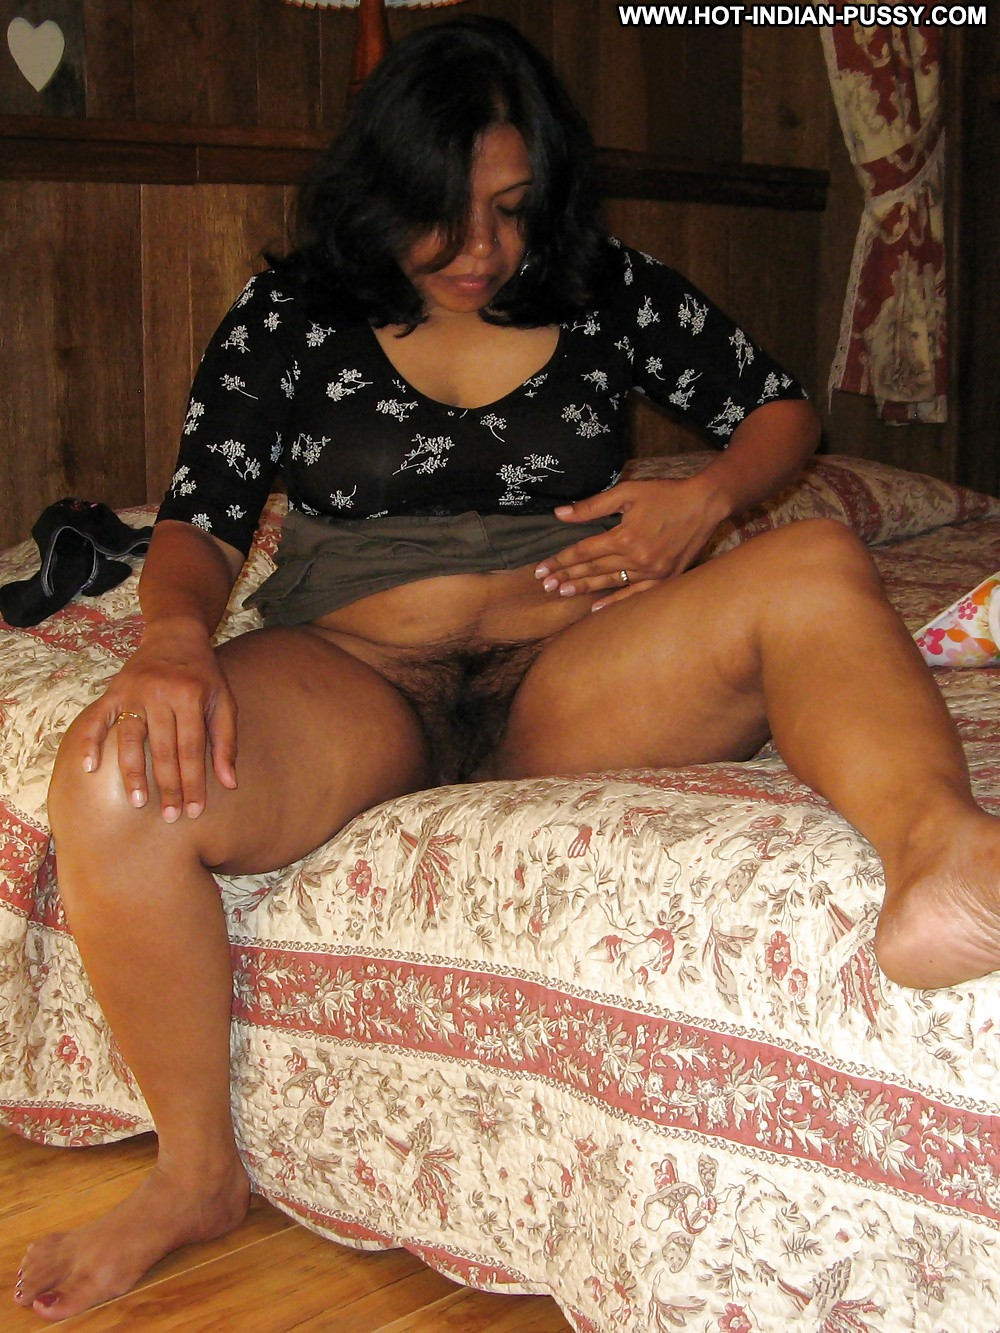 Hot indian babe in the middle of a threesome - 2 part 8